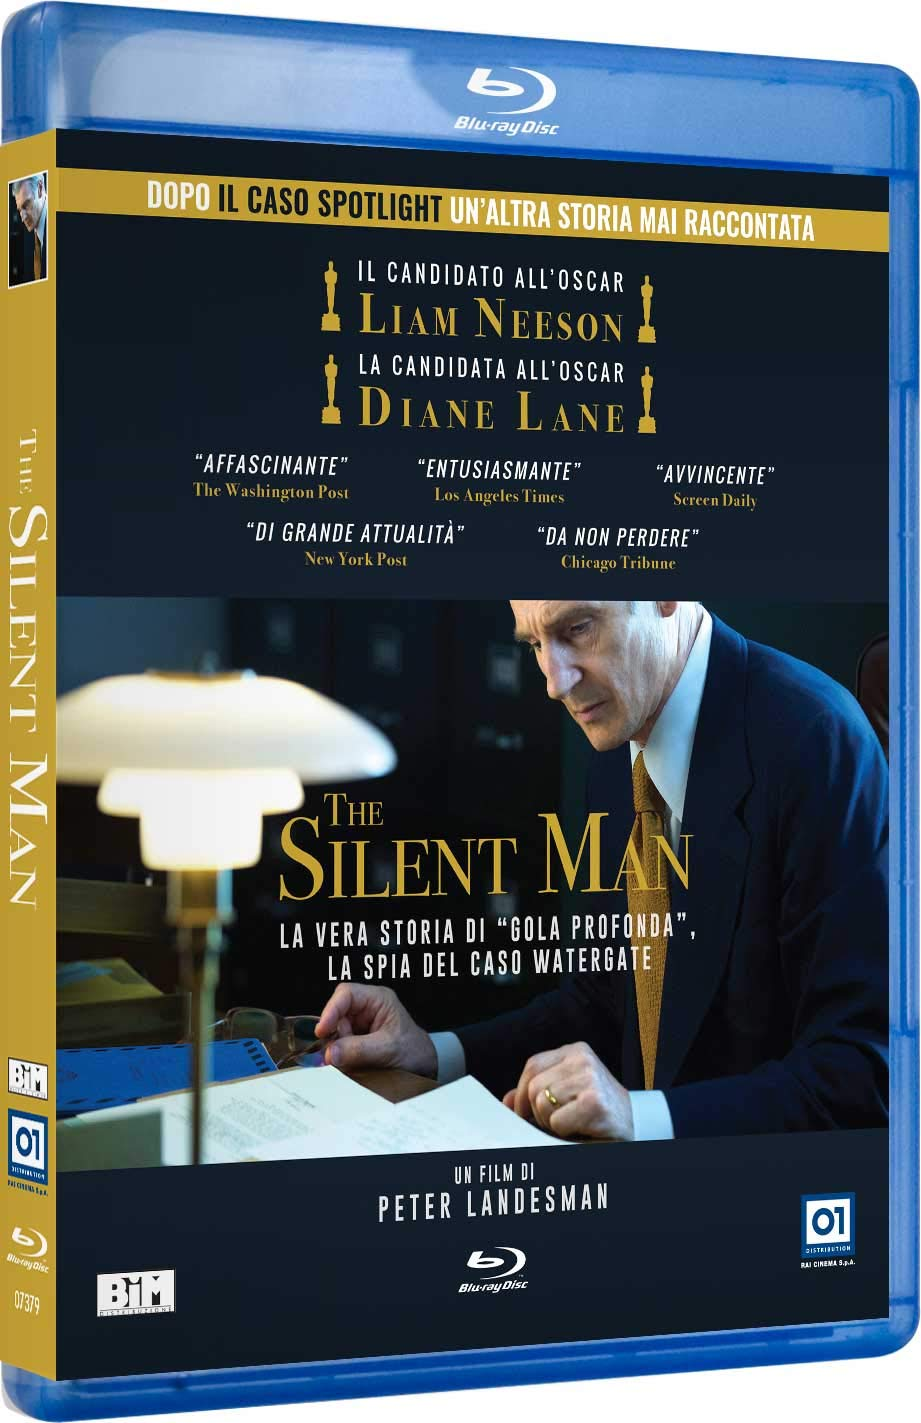 THE SILENT MAN - BLU RAY